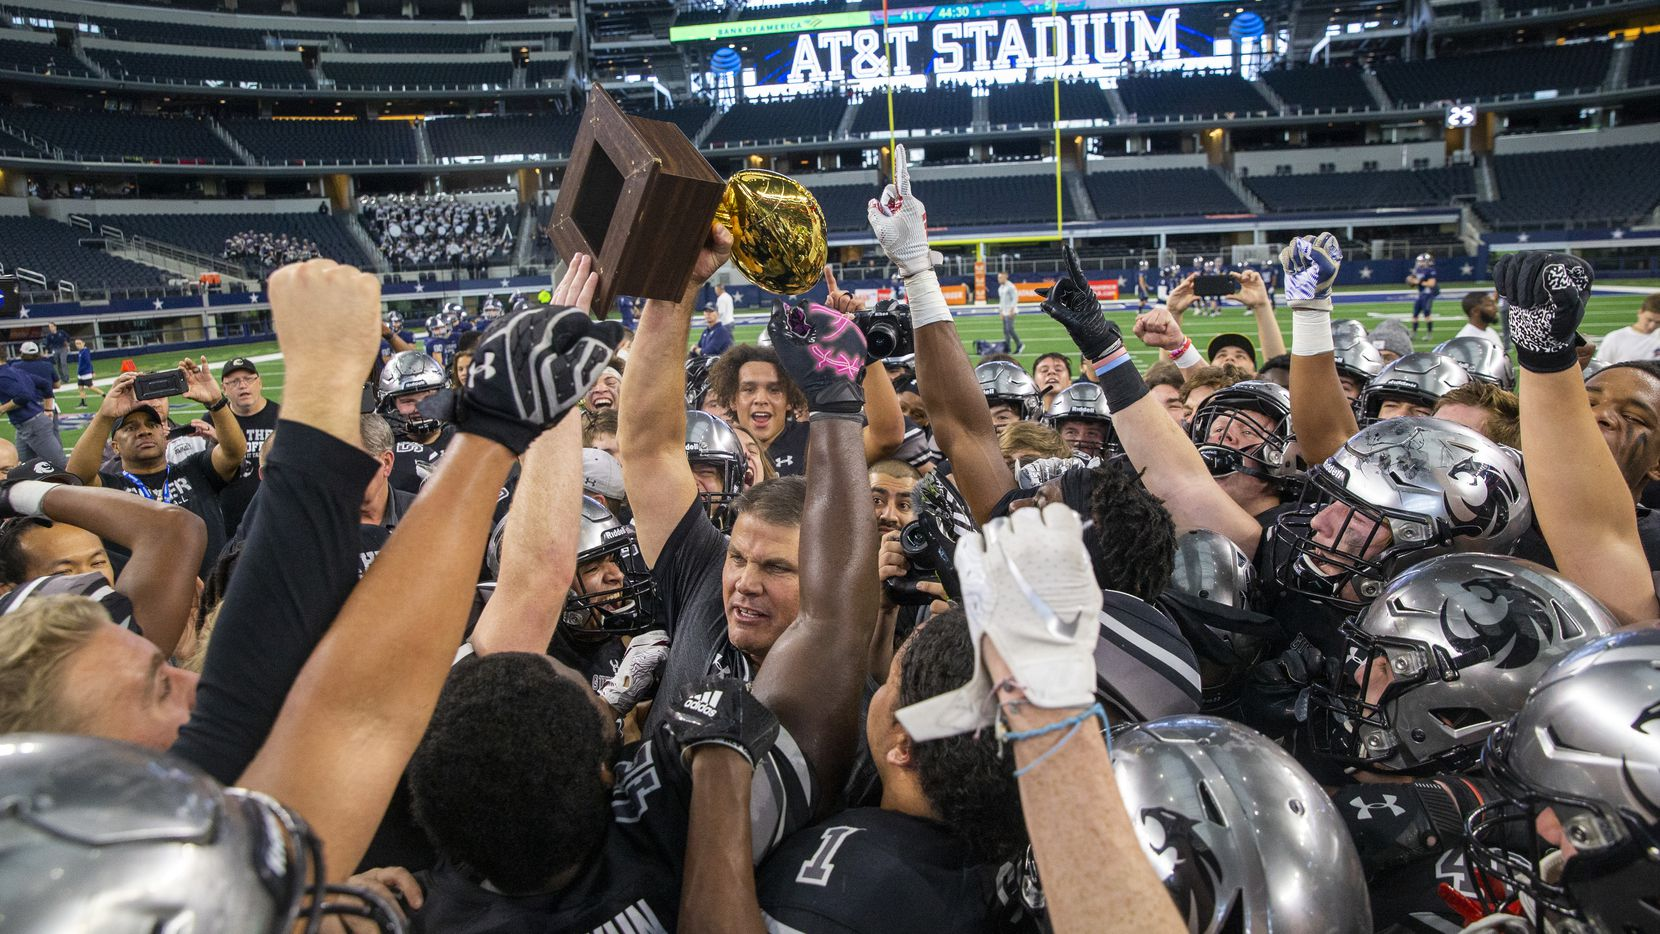 Denton Guyer celebrates after beating Cedar Hill in the Class 6A Division II area-round high school football playoff game at the AT&T Stadium in Arlington, Texas, on Saturday, November 23, 2019. (Lynda M. Gonzalez/The Dallas Morning News)